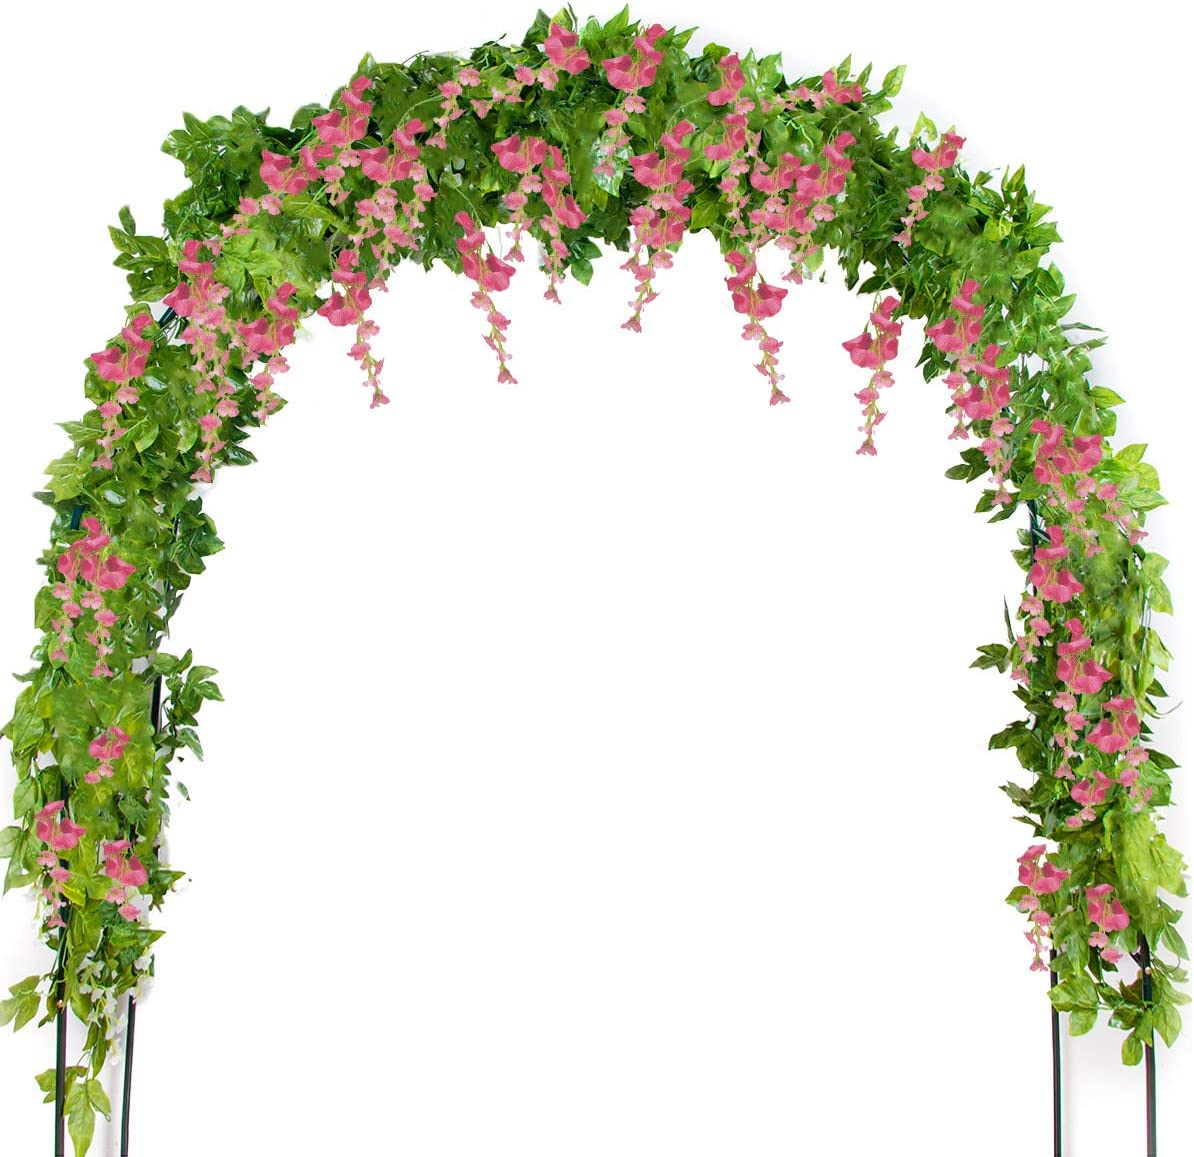 Mavee 4 Pcs 7.2 Feet Artificial Flower Vine Silk Wisteria Garland Hanging Rattan with Ivy Leaf for Wedding Home Decor (Pink)